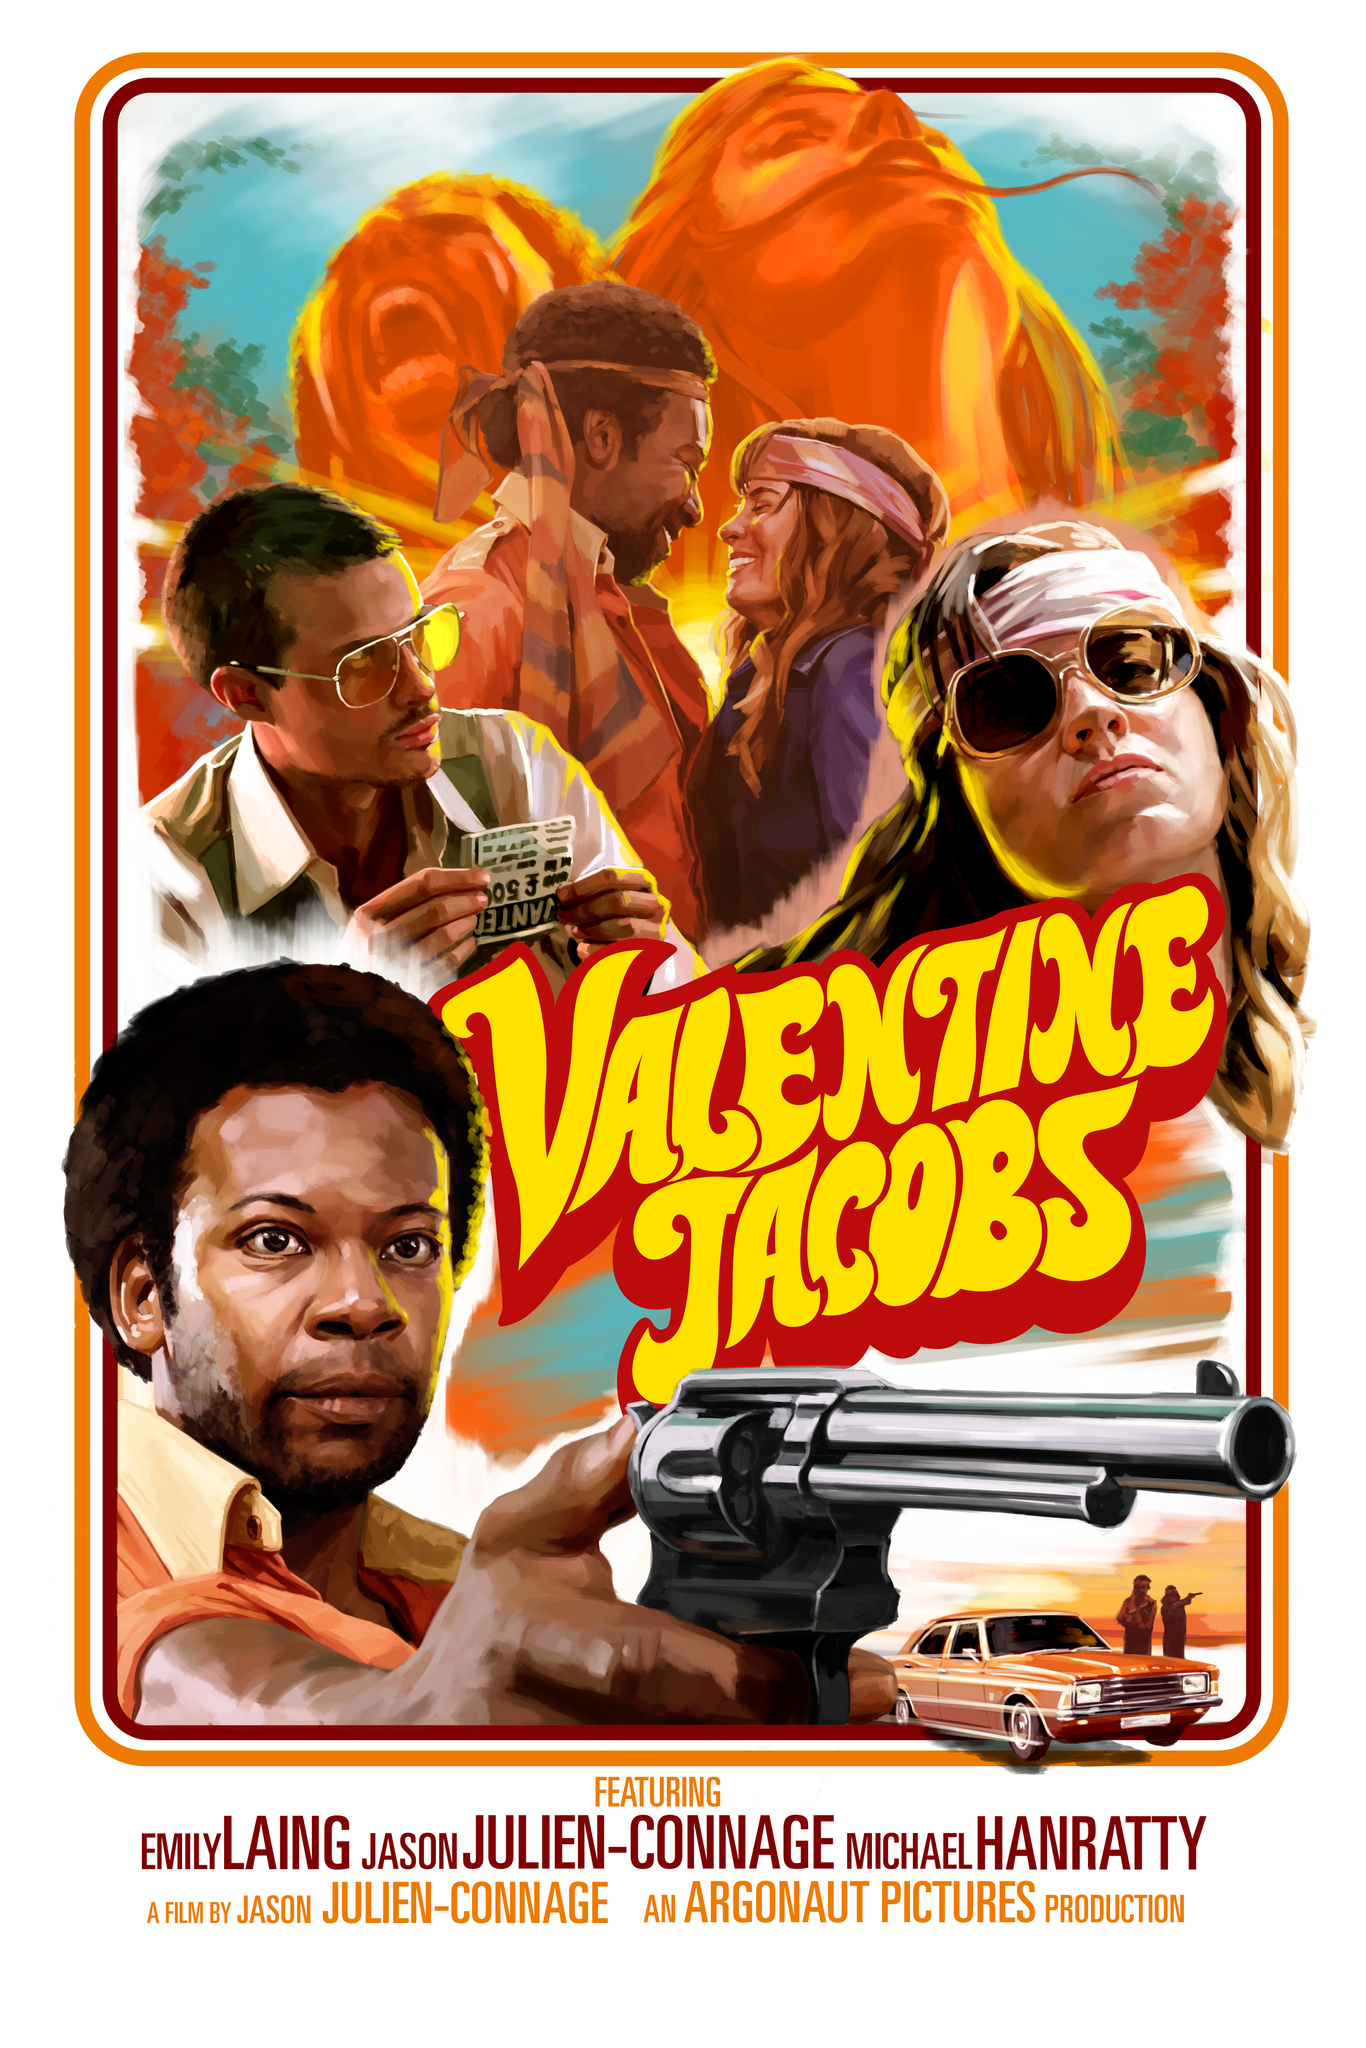 Argonaut Pictures Valentine Jacobs Official Poster